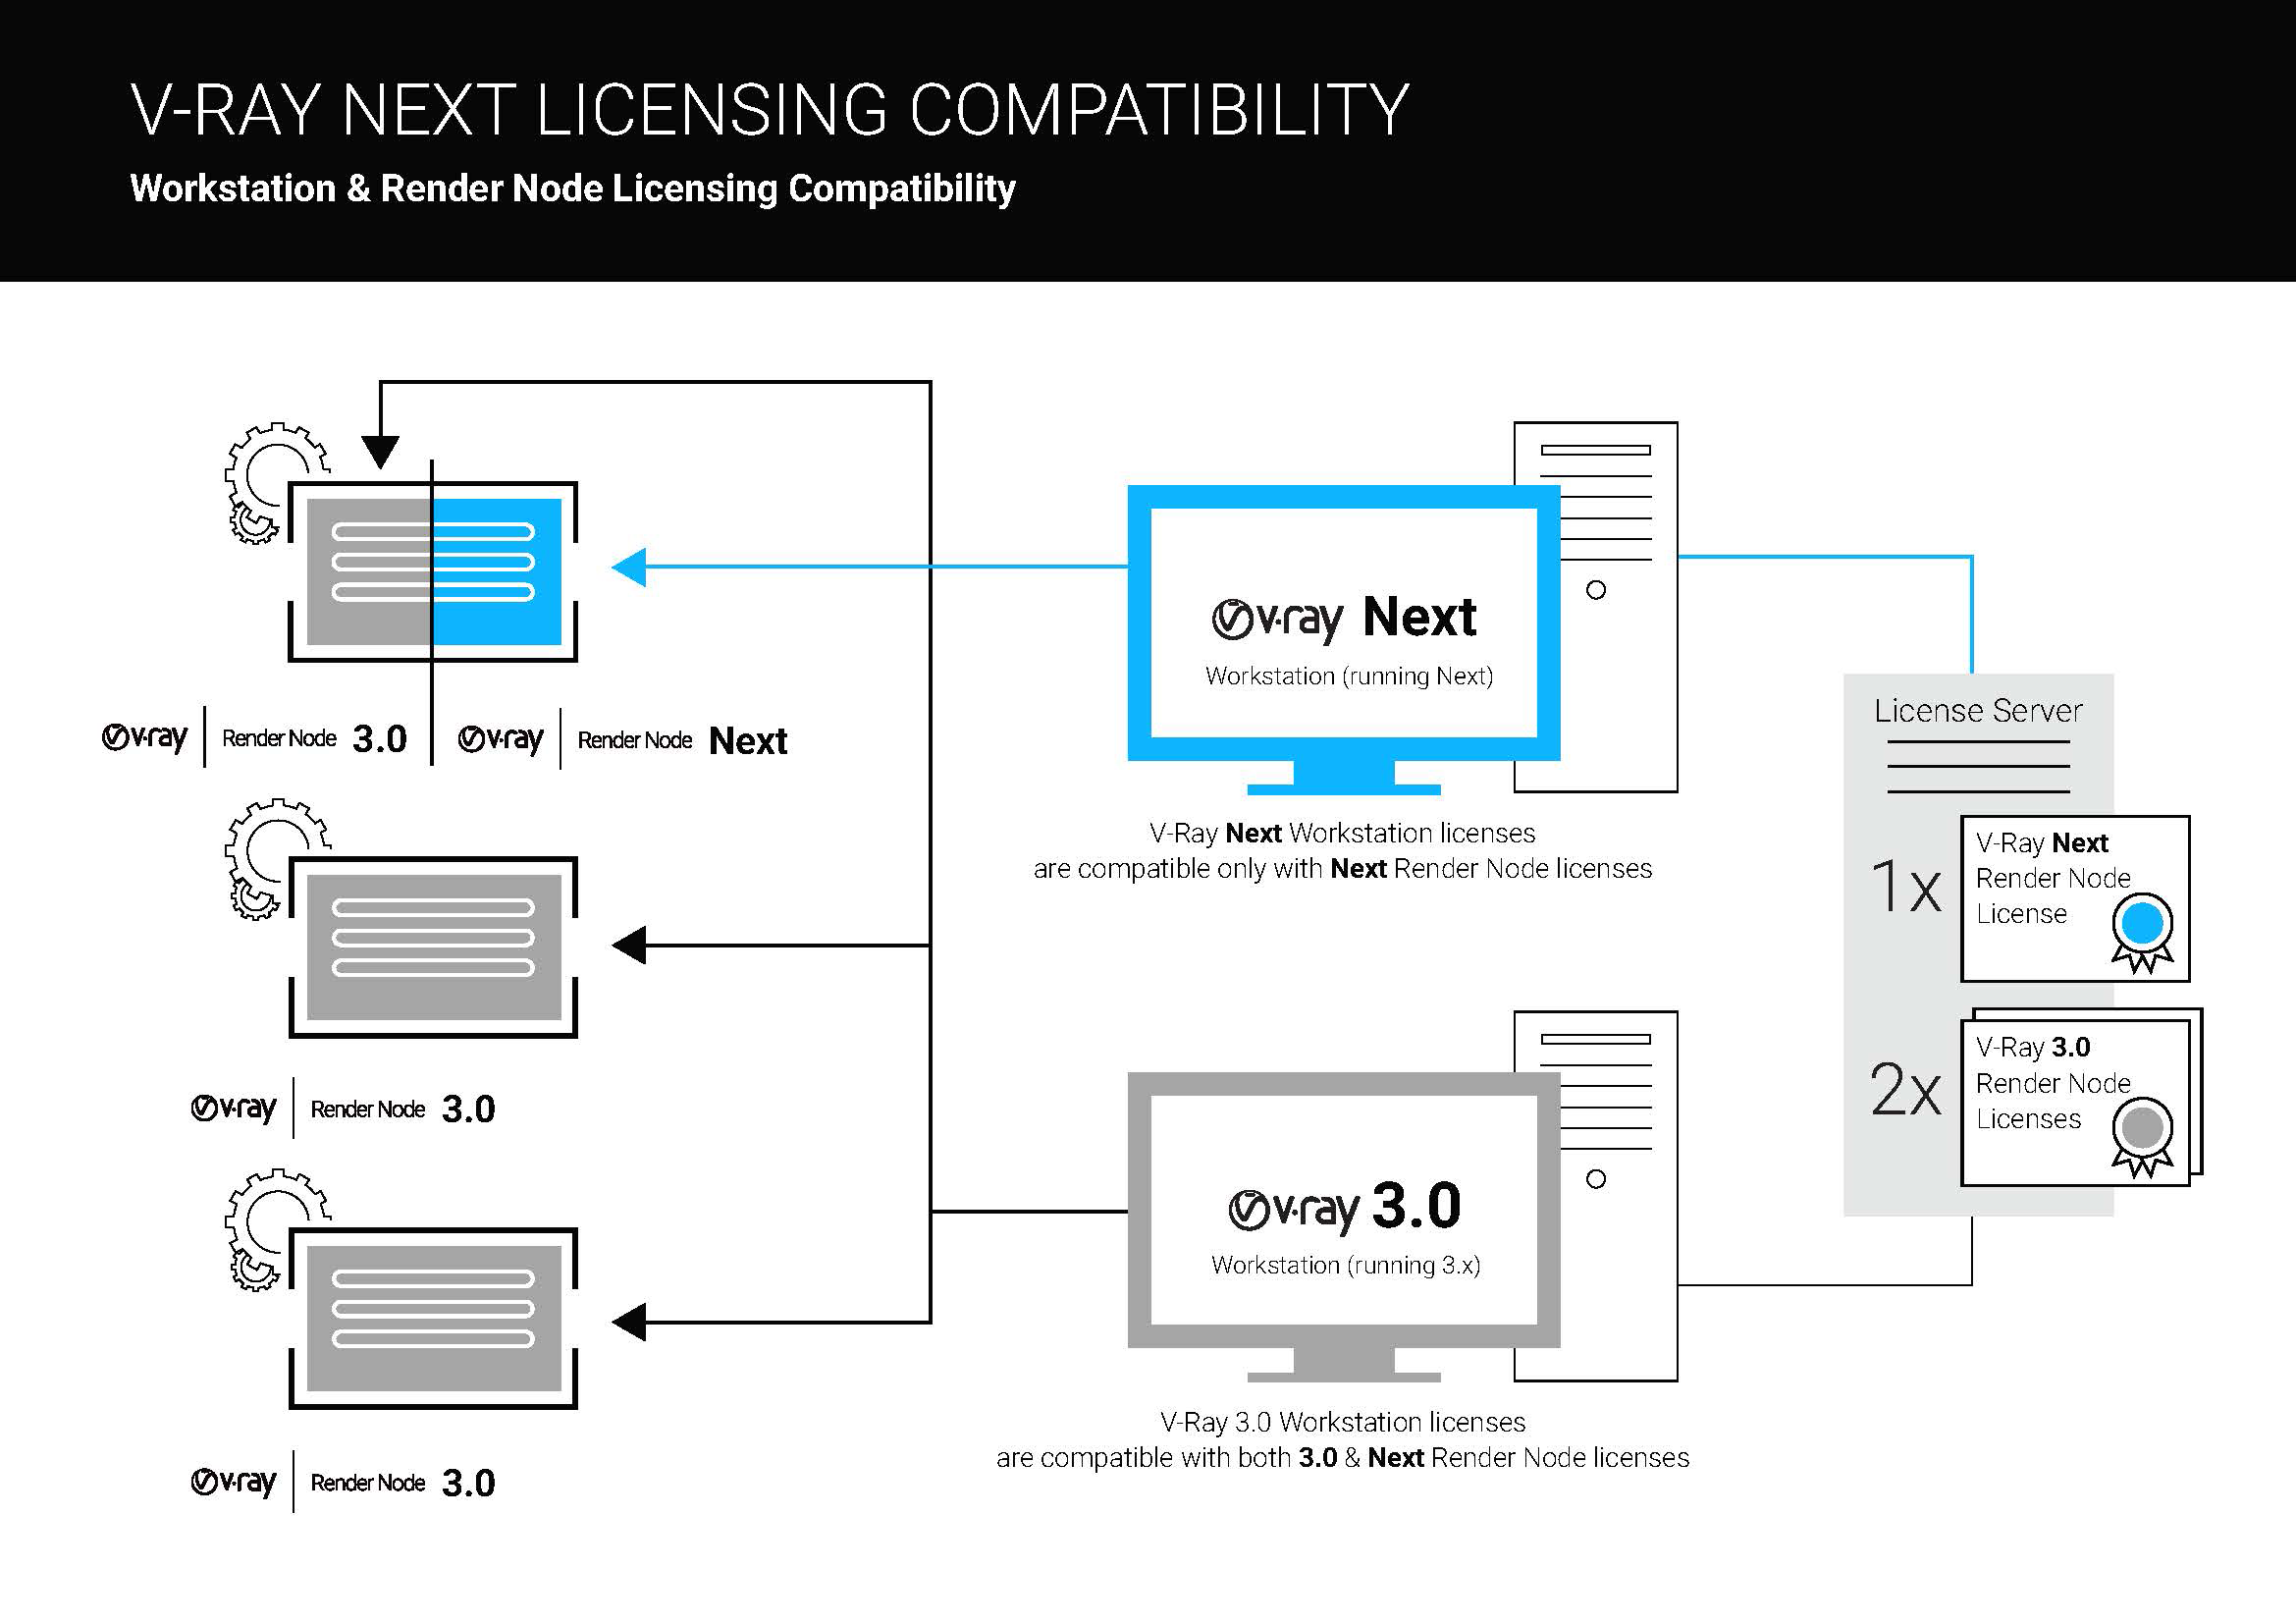 vray next compatability diagram